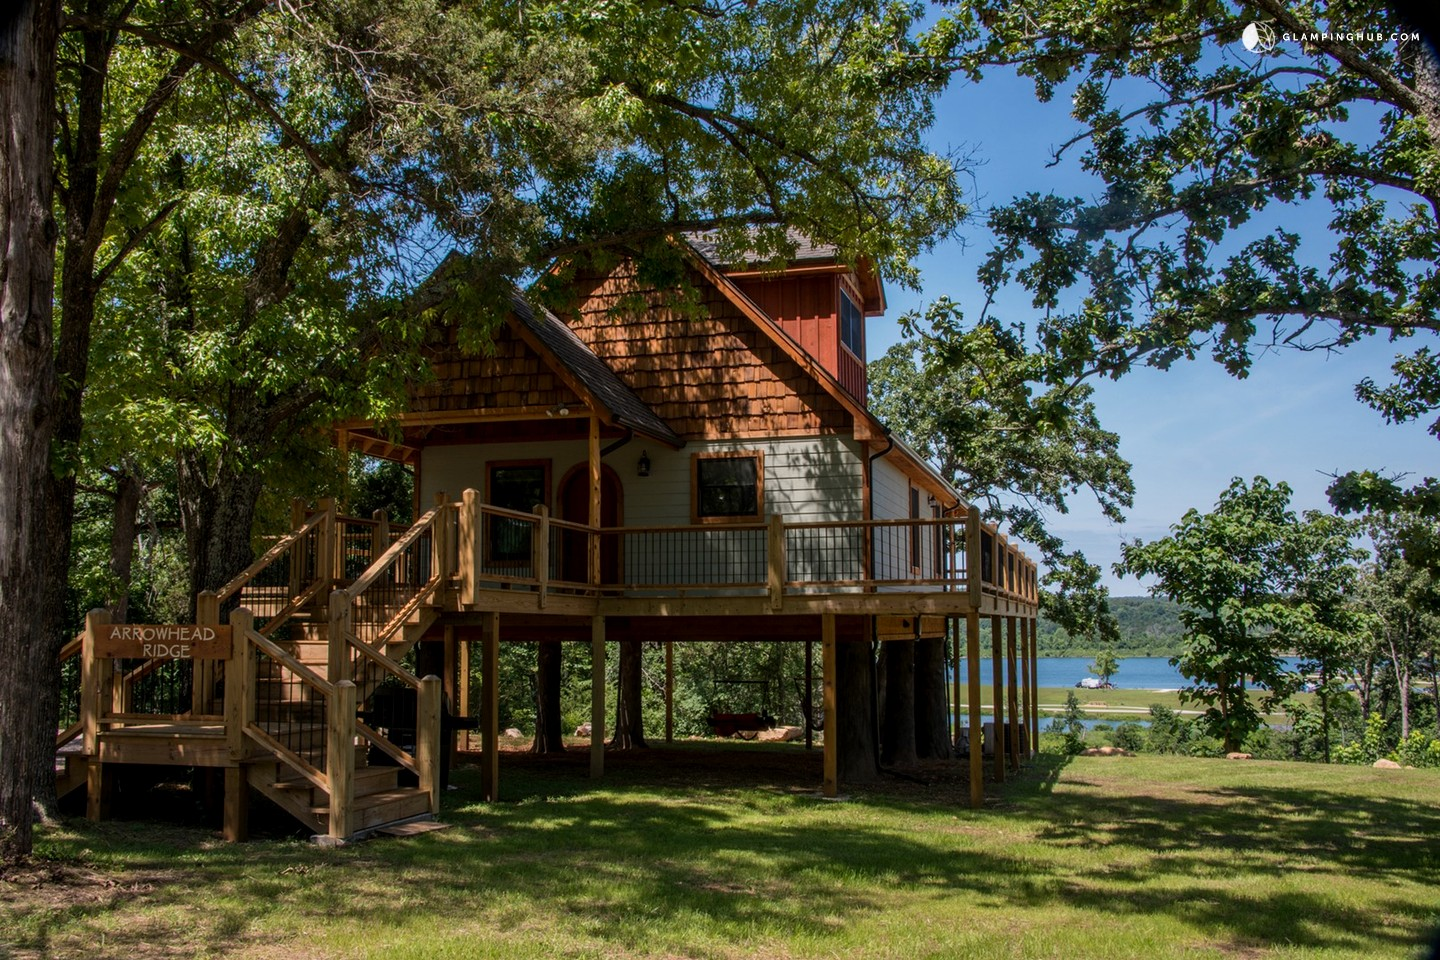 Tree House with a Hot Tub in Arkansas